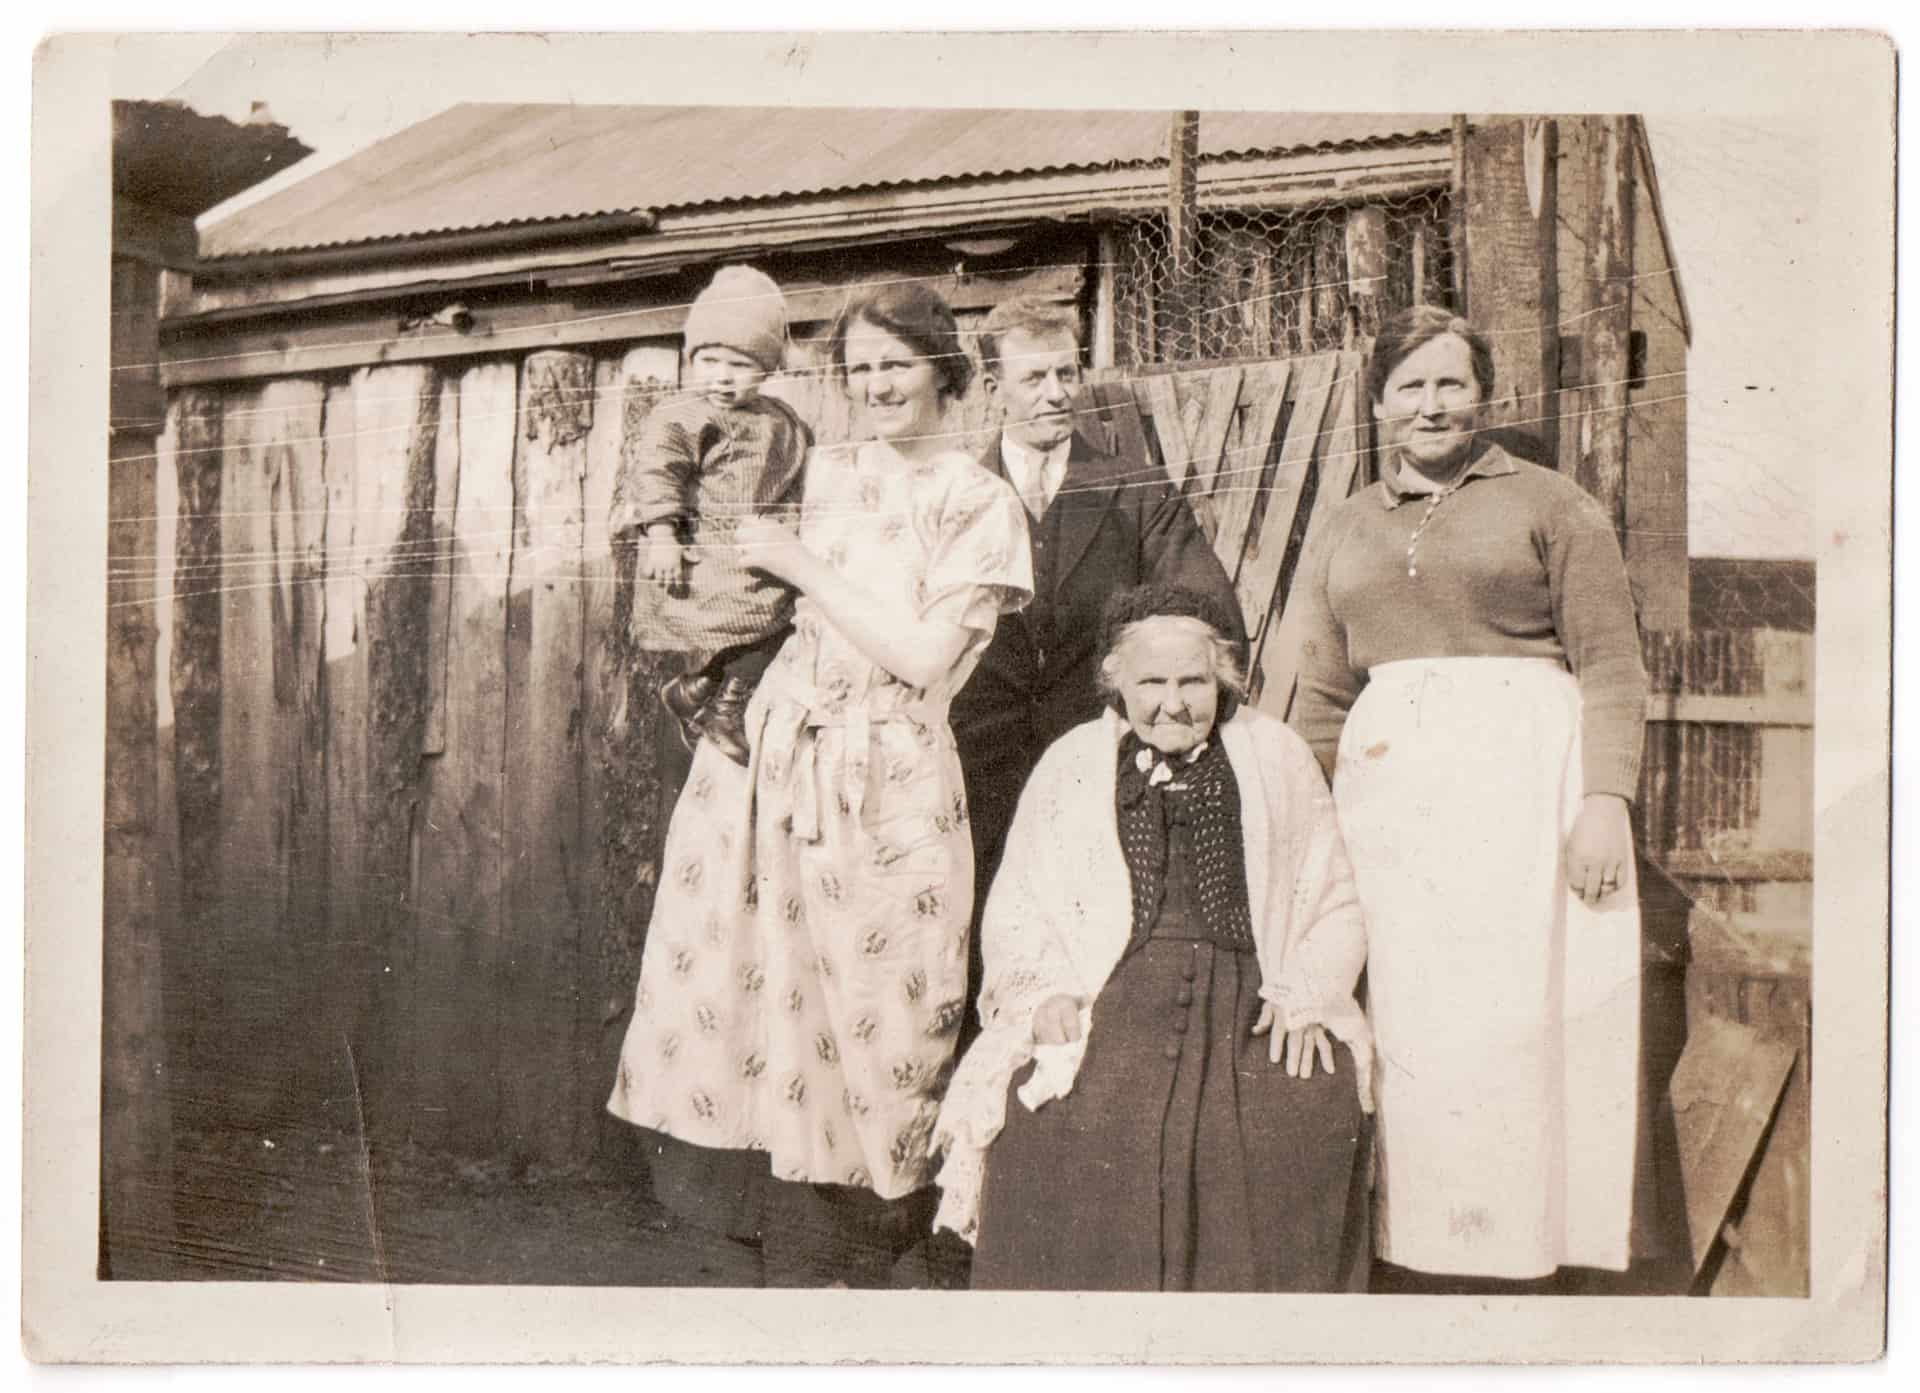 This is group photo taken in 1930 of my mom's family - that's my mom's grandmother at the front and her aunt Lizzy at the back on the right.